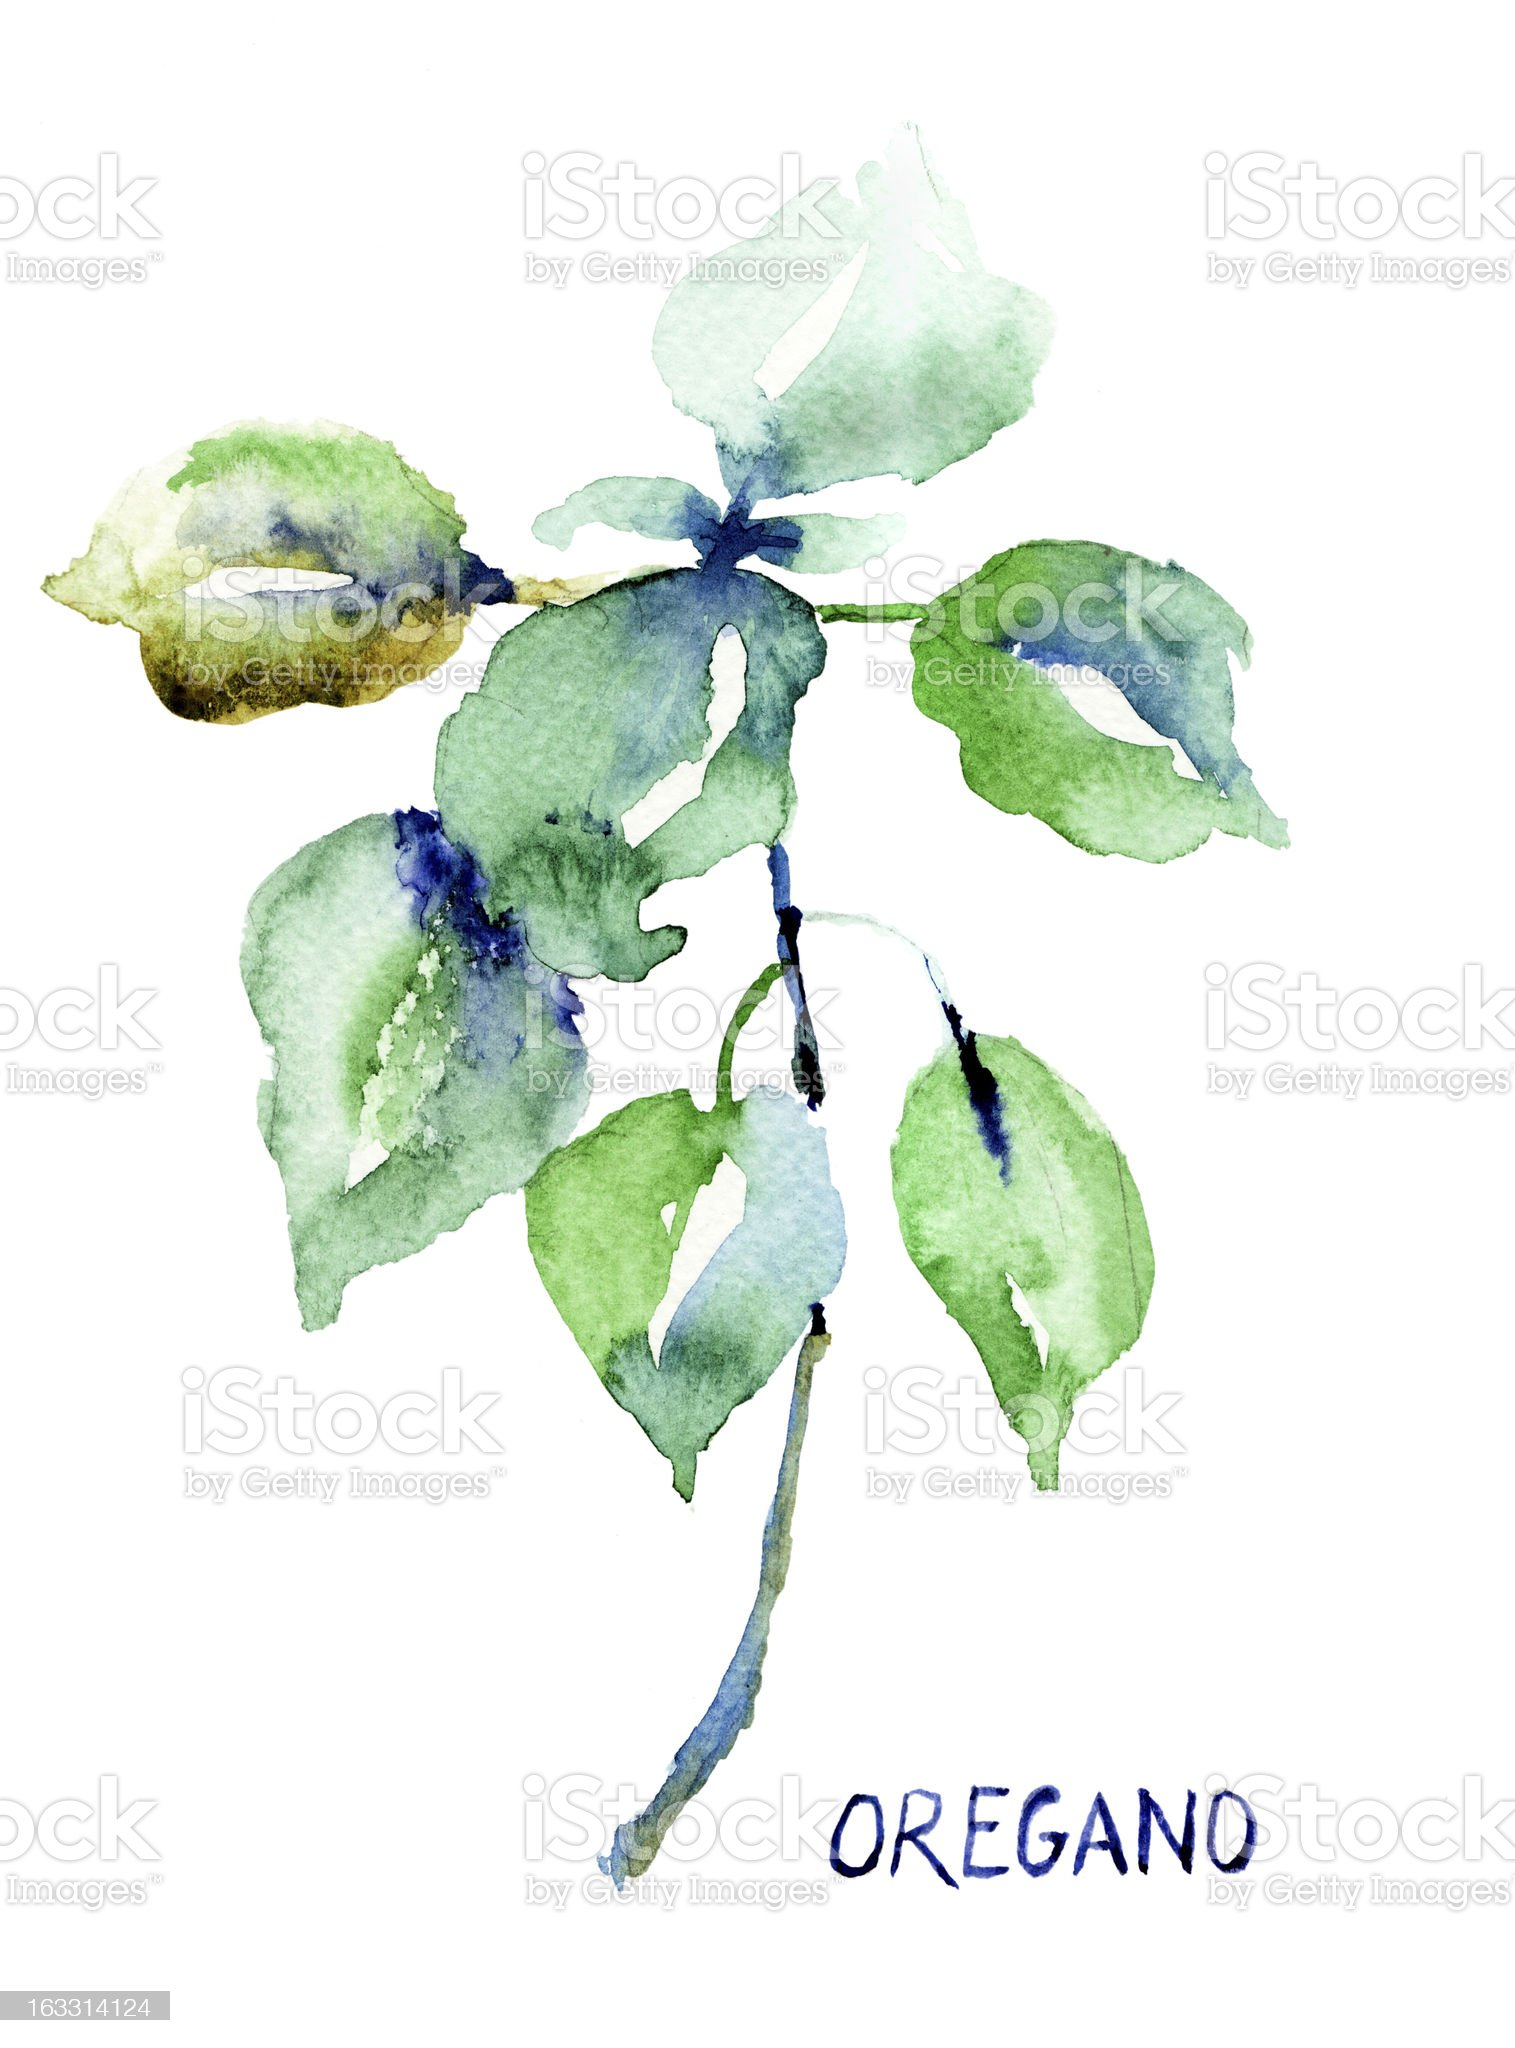 Watercolor oregano plant painting on white background royalty-free stock vector art